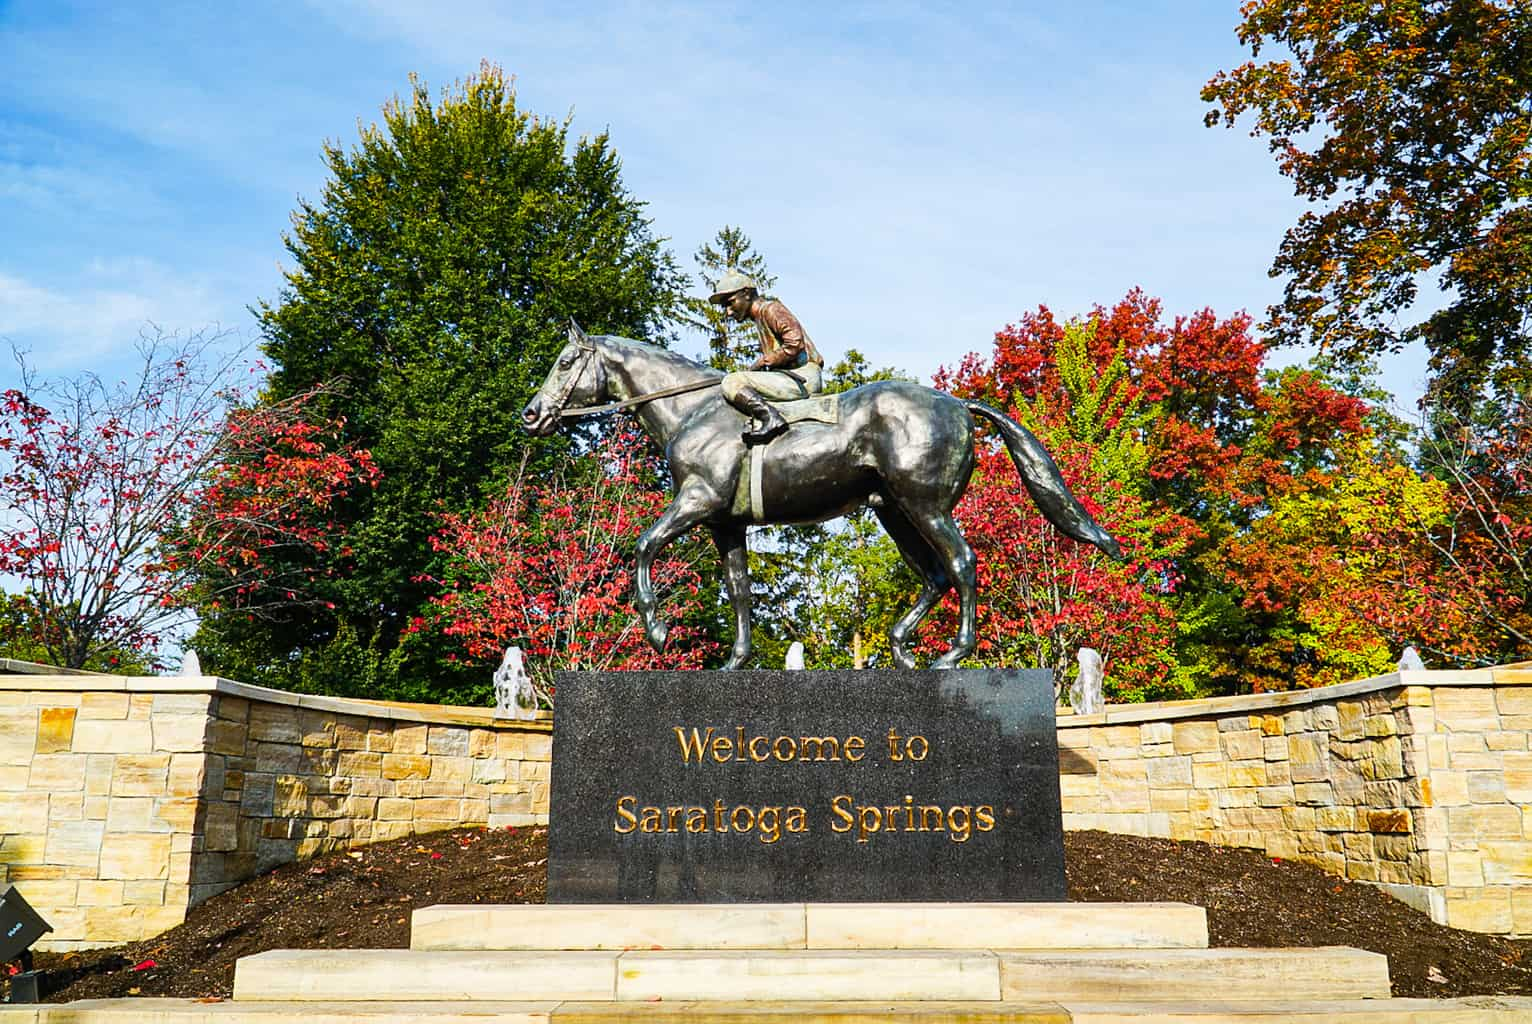 A beautiful sign in Congress Park that welcomes you to Saratoga Springs.